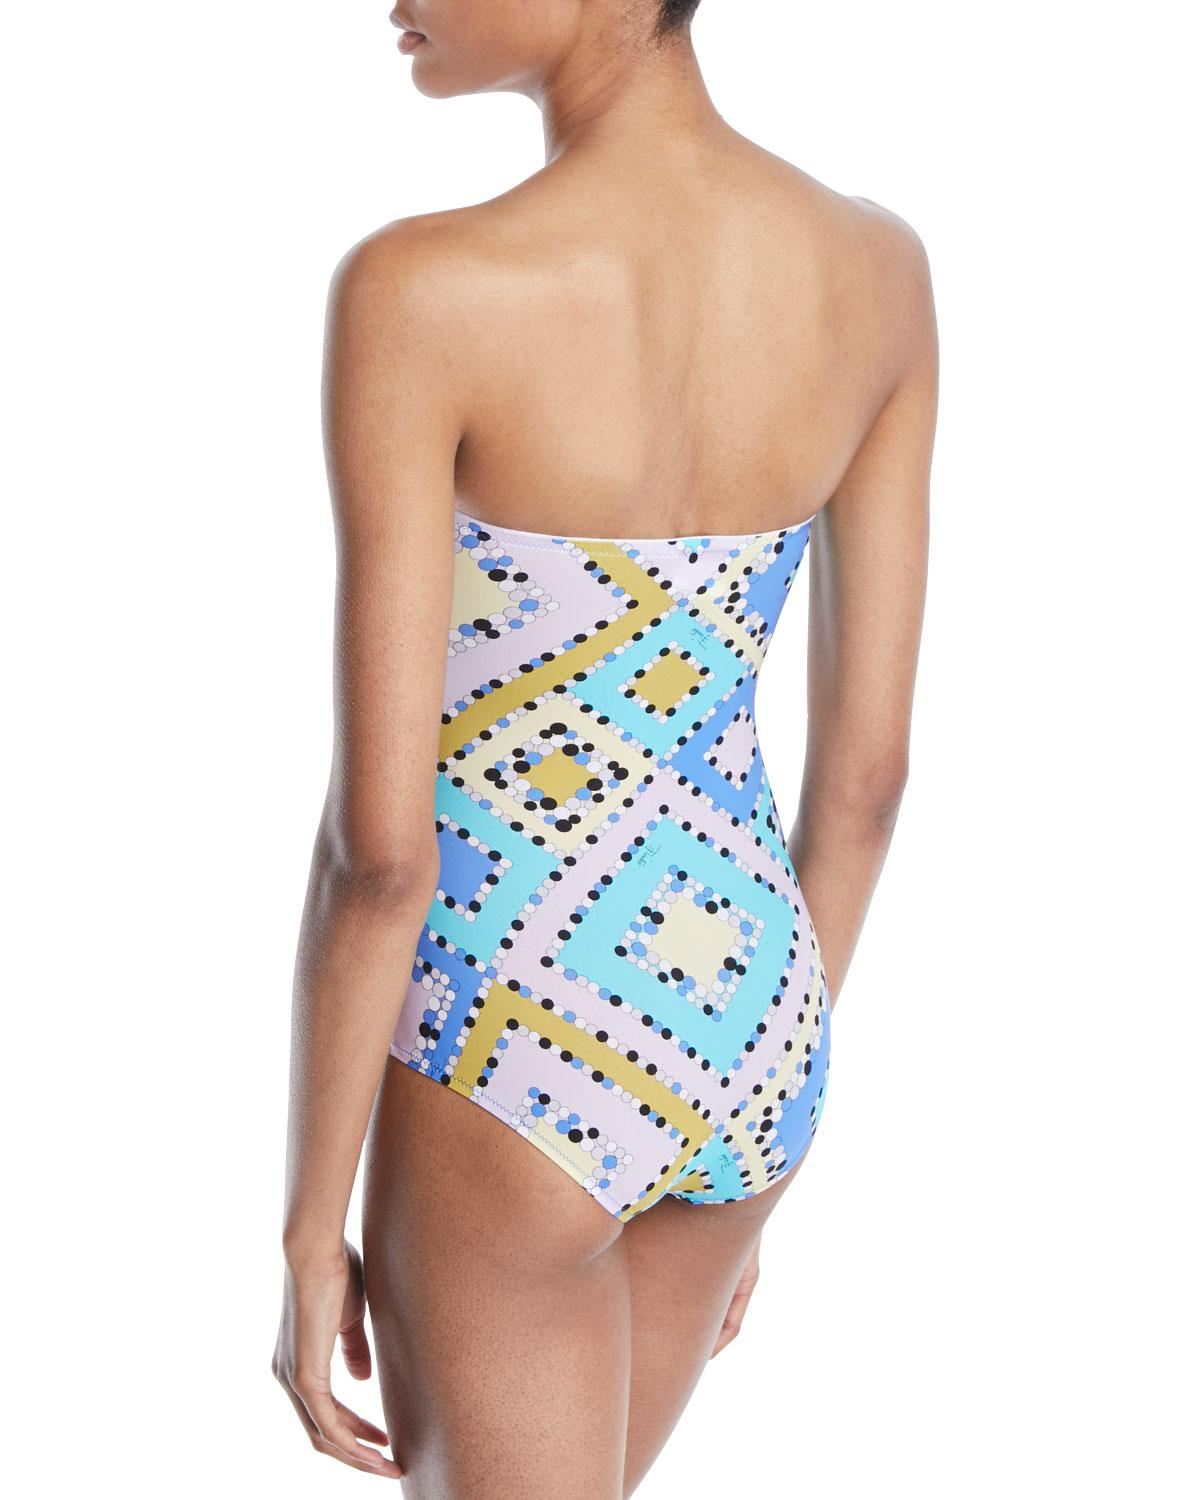 09cf0fdd294bb Lyst - Emilio Pucci Postcards Tie-front One-piece Bandeau Swimsuit in Blue